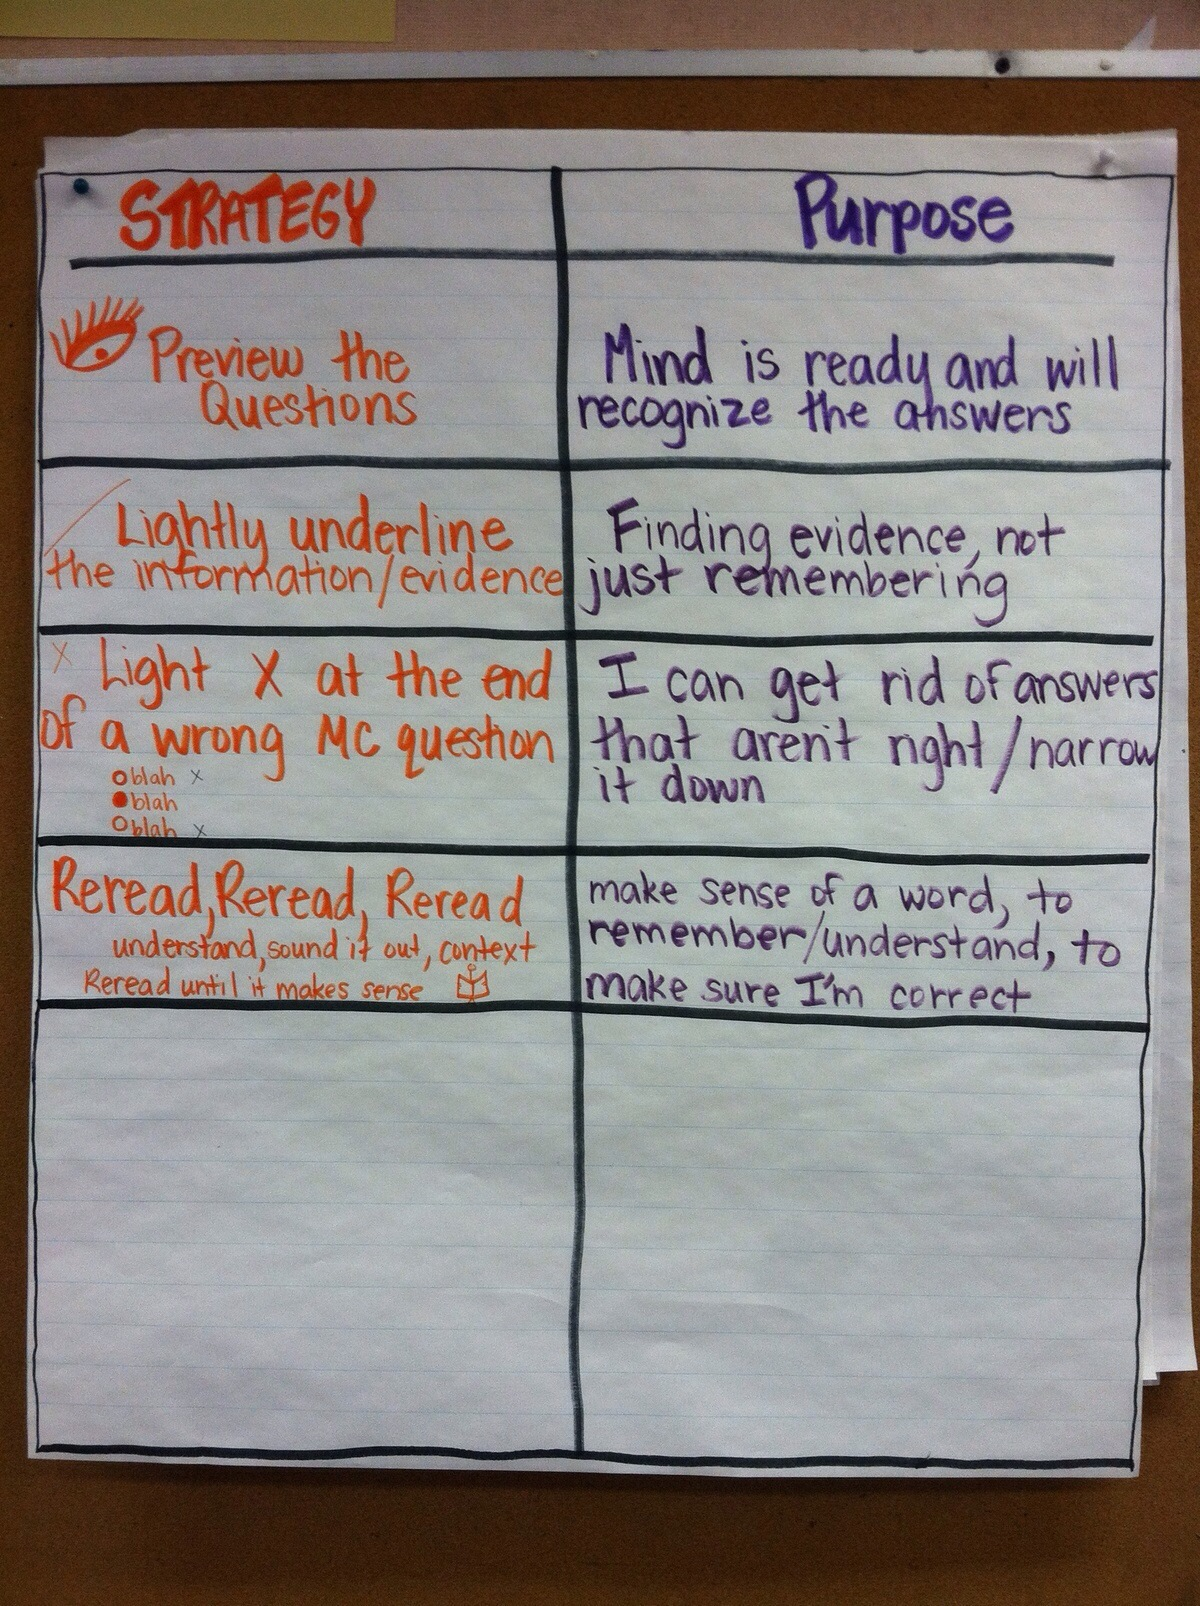 Test Taking Strategies And Their Purpose